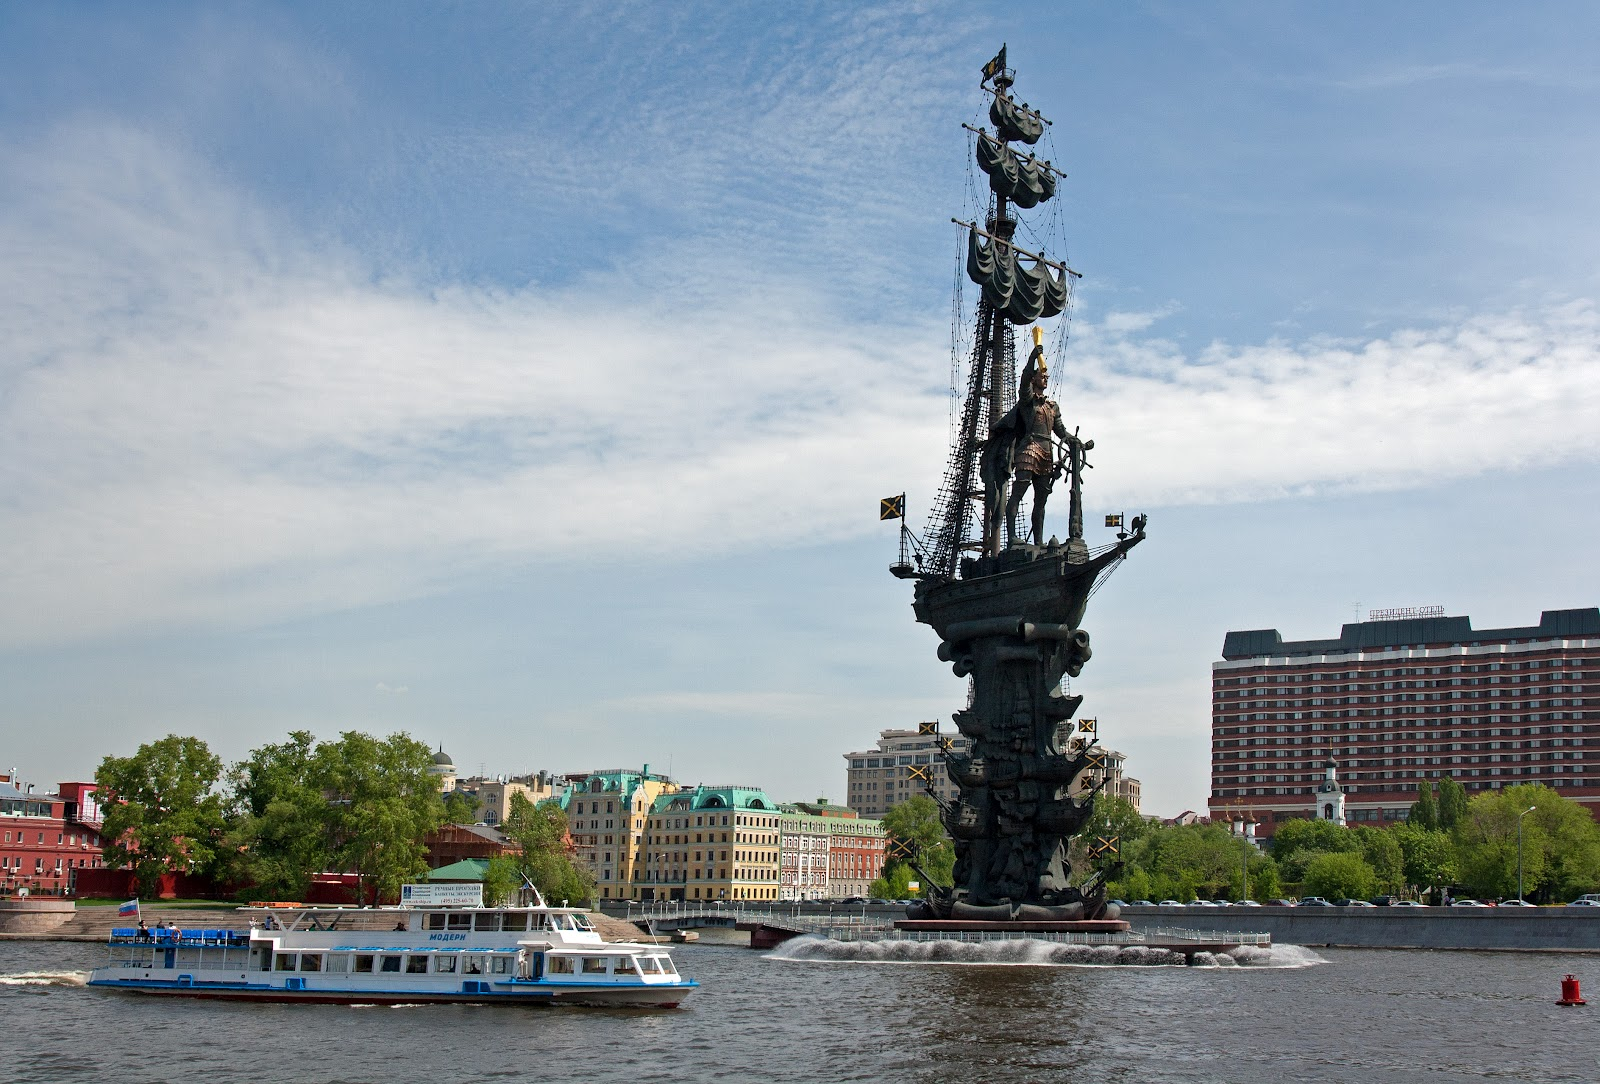 Peter the Great Statue, Russia